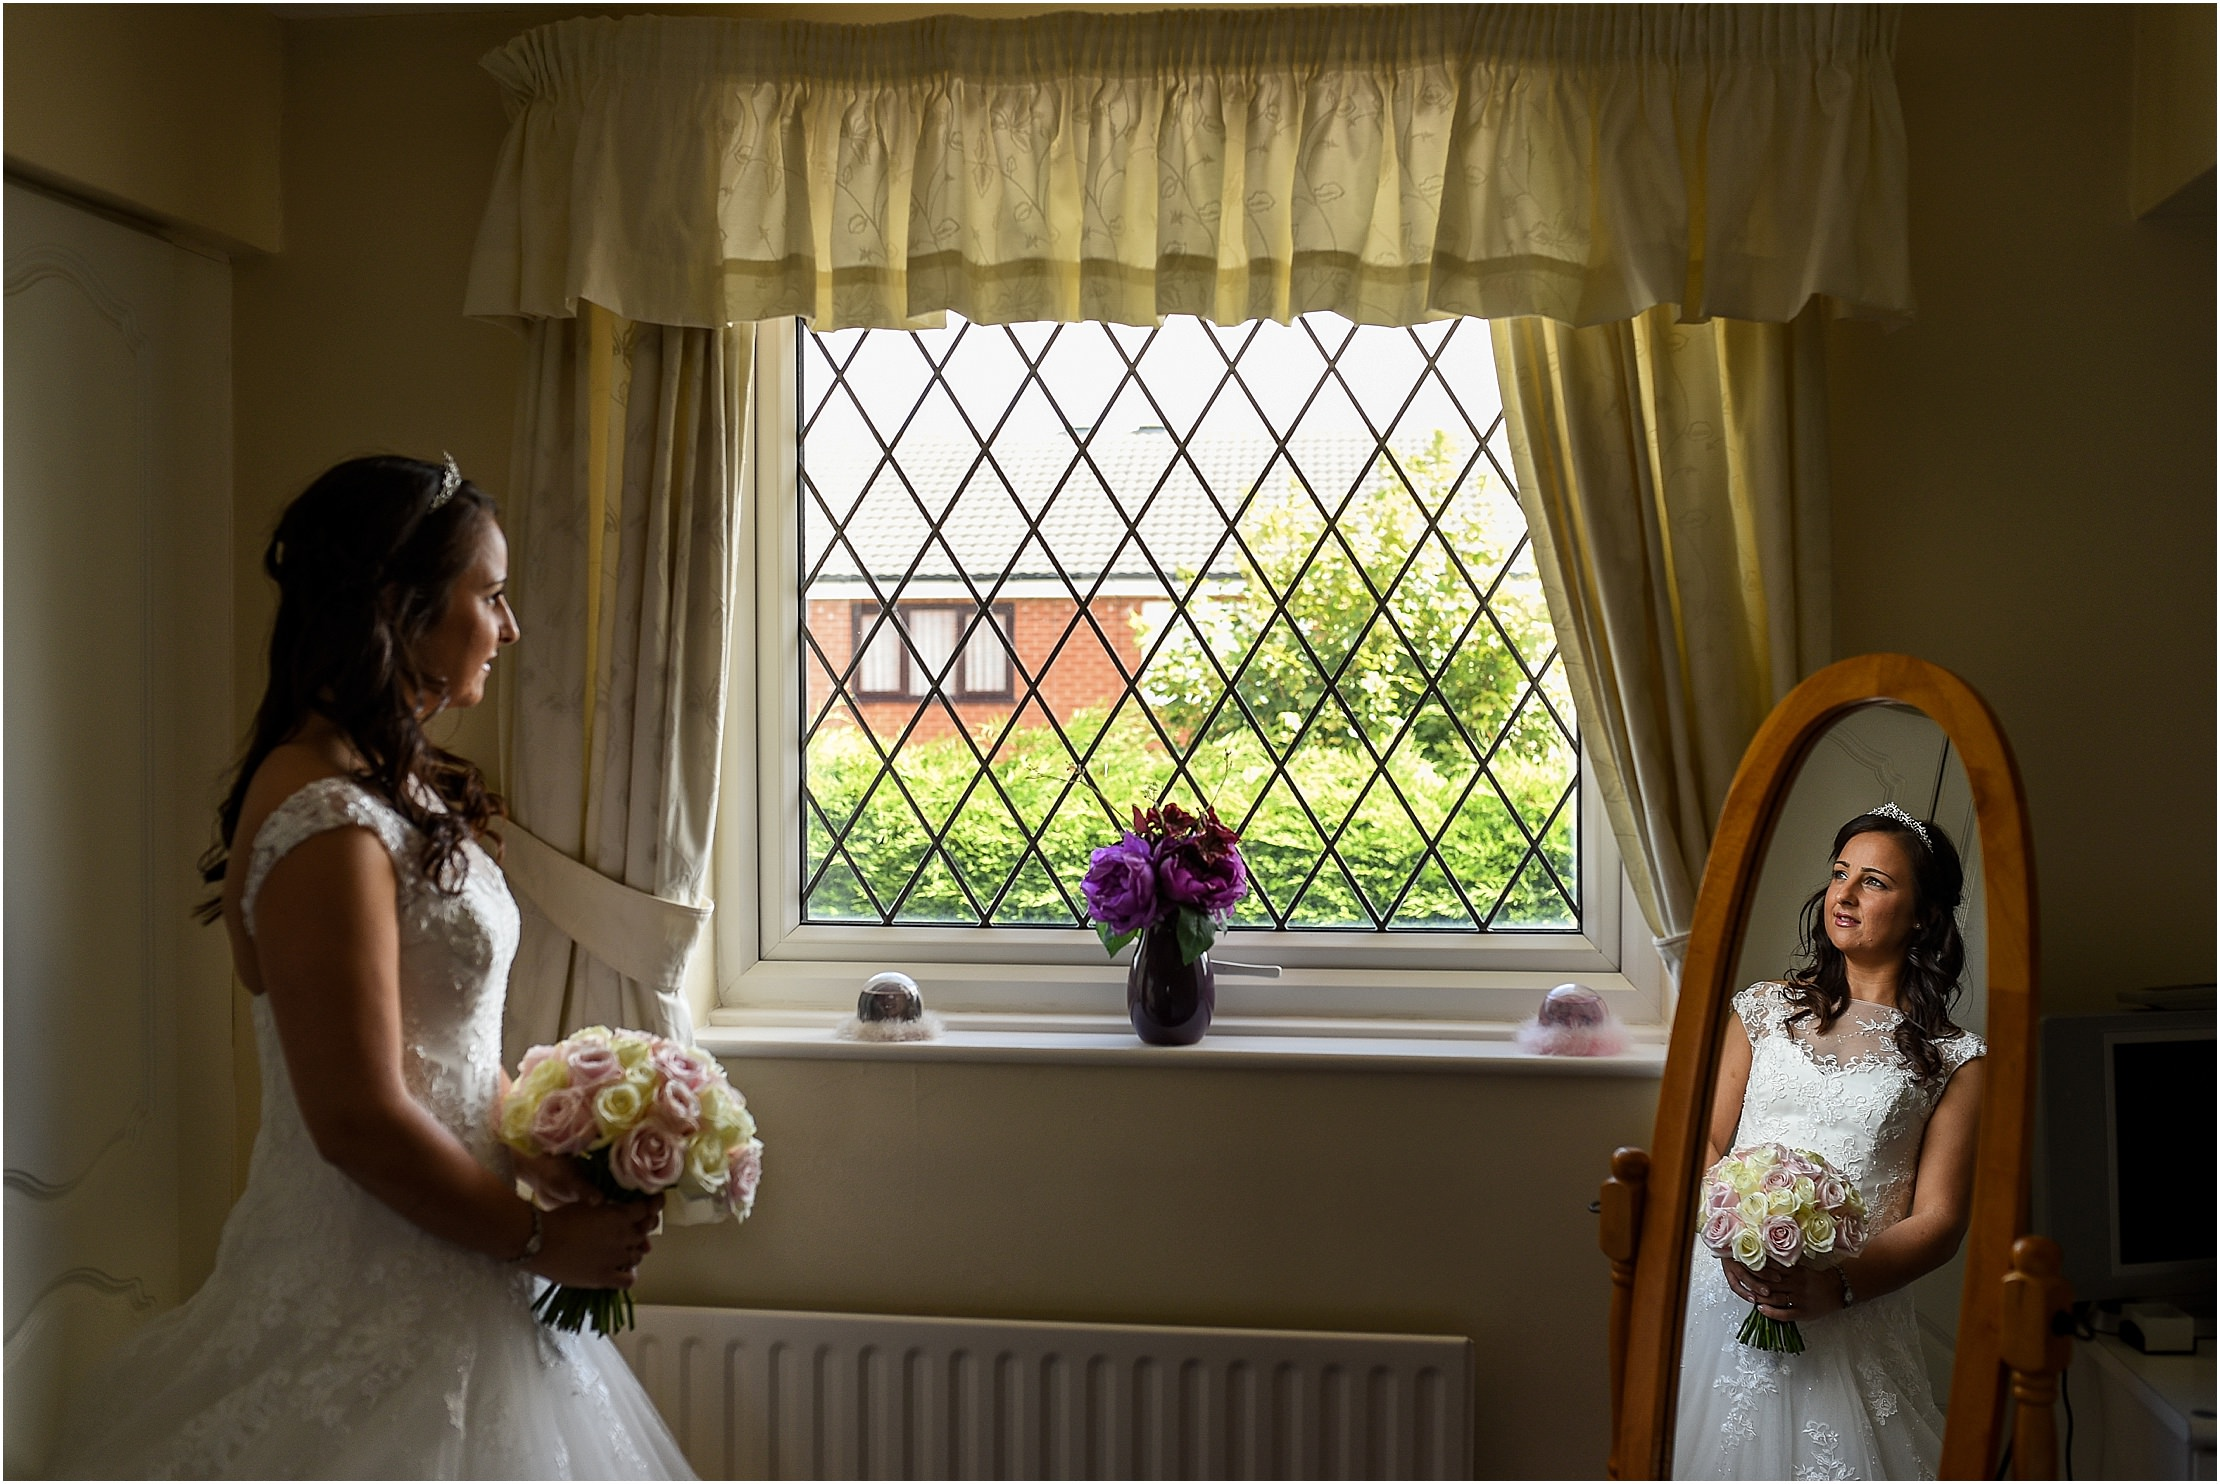 dan-wootton-wedding-photography-2015 - 148.jpg